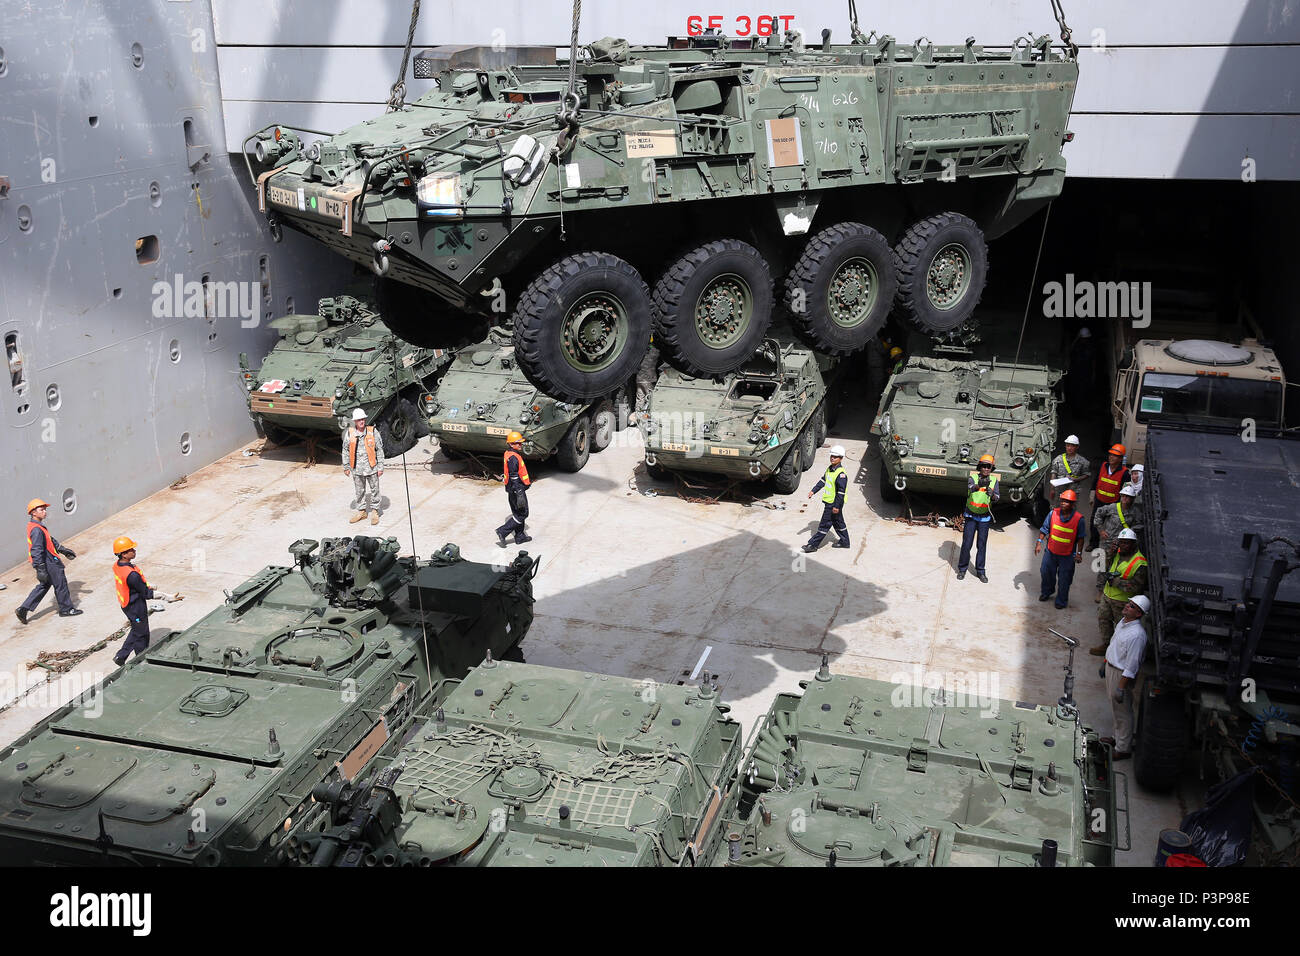 160712-N-IX266-012 SATTAHIP, Thailand—An M1126 Stryker is lowered into general purpose, heavy lift ship MV OCEAN GLORY during a backload of equipment at Chuk Samet, here, from exercise Hanuman Guardian, July 12. Military Sealift Command's contracted voyage-charter MV OCEAN GLORY recently conducted a backload of about 250 items in Thailand as part of U.S. Army Pacific's mobility operation PACIFIC PATHWAYS 16-2. (U.S. Navy photo by Grady T. Fontana/Released) - Stock Image